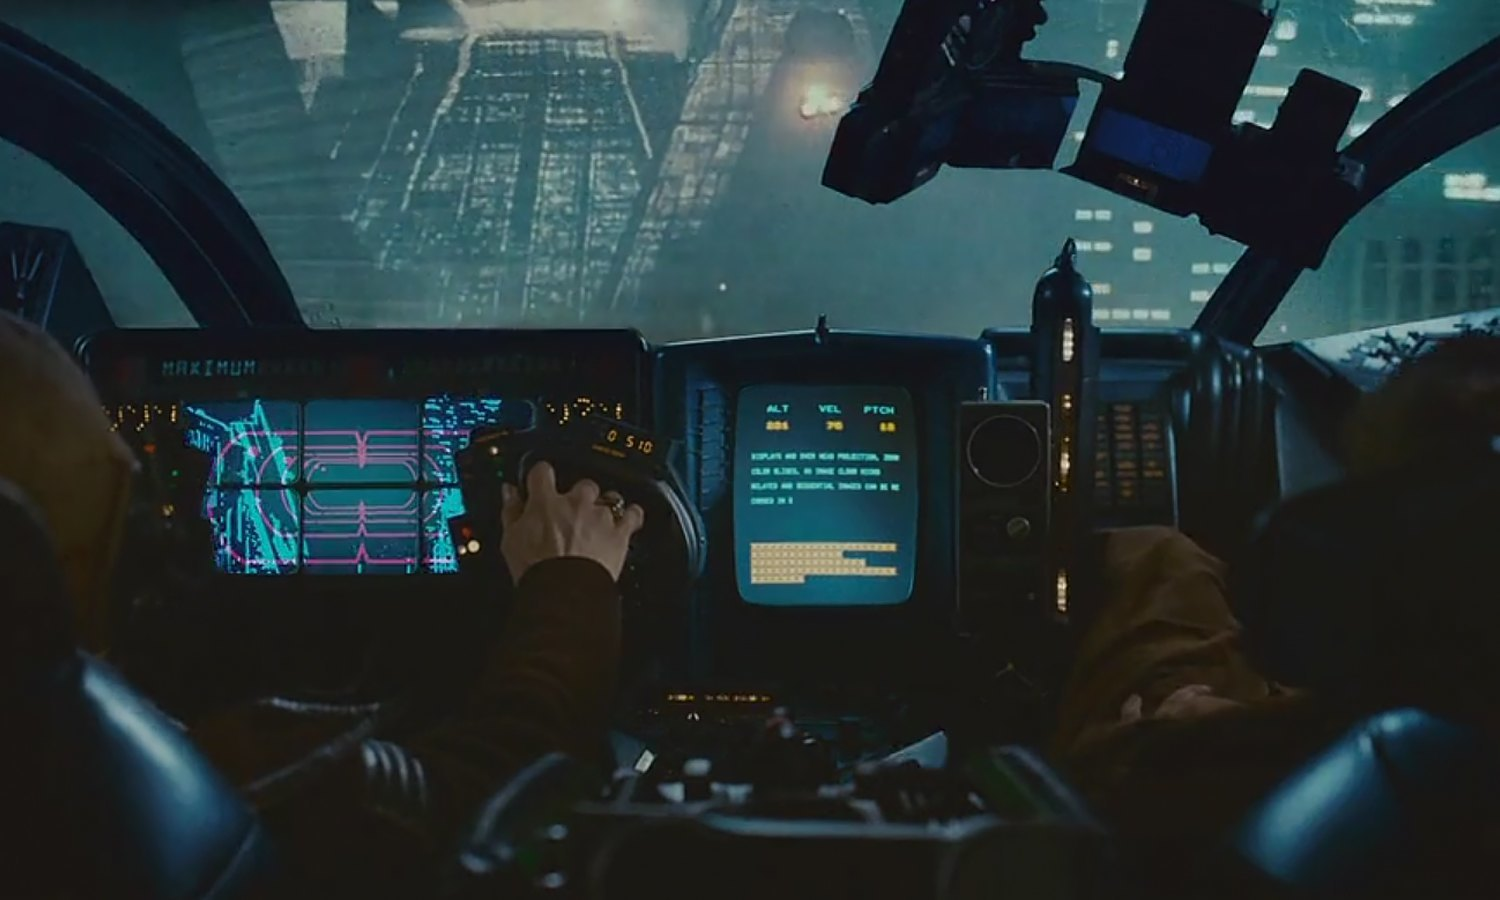 How 80s Movies Made Sci Fi Dashboards Into A Beautiful